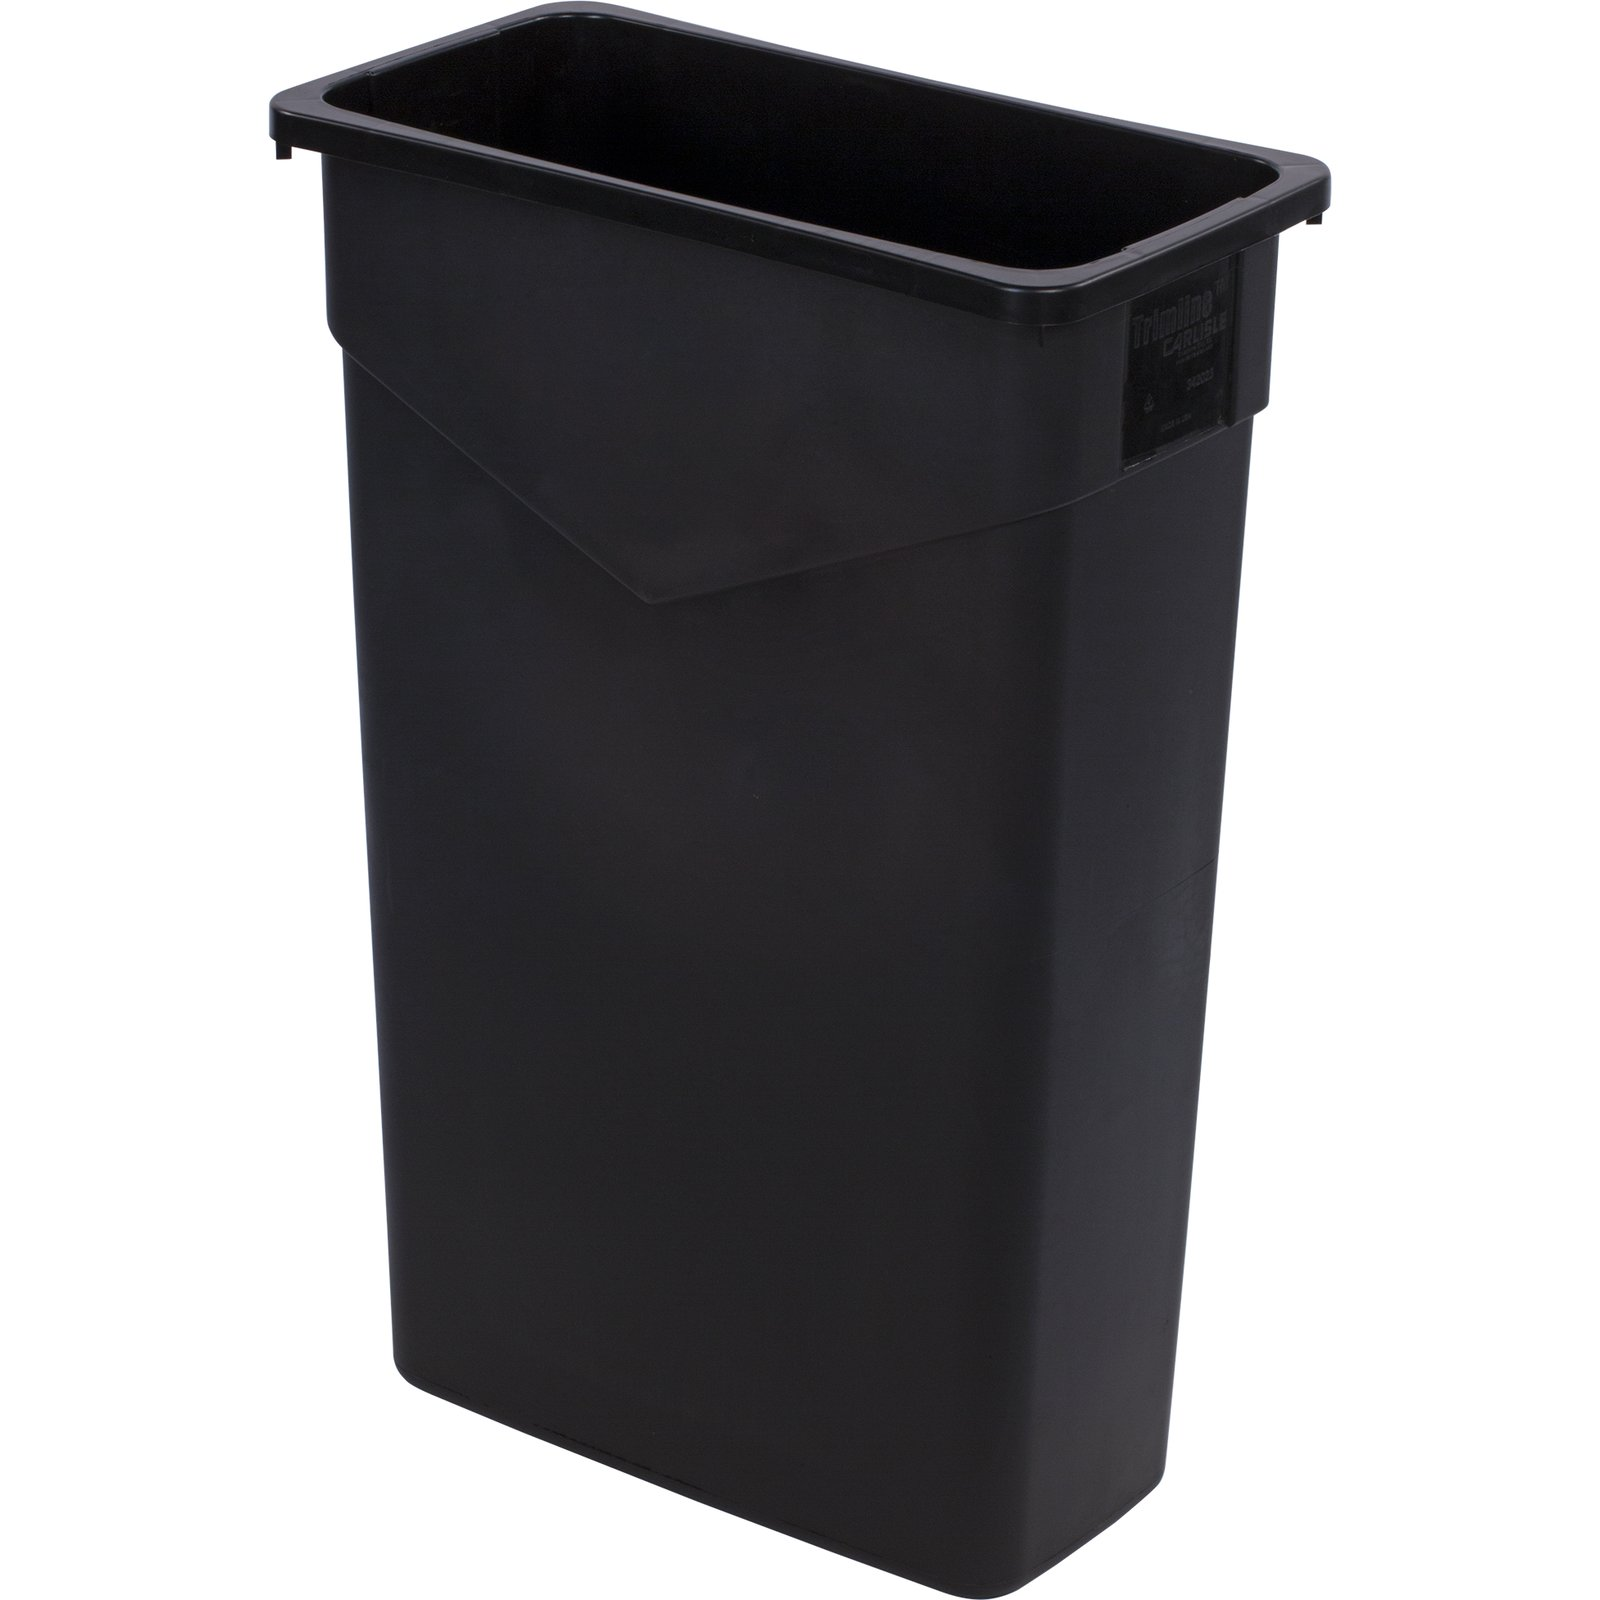 TRASH CAN 23 GALLON BLACK RECTANGLE TRIMLINE